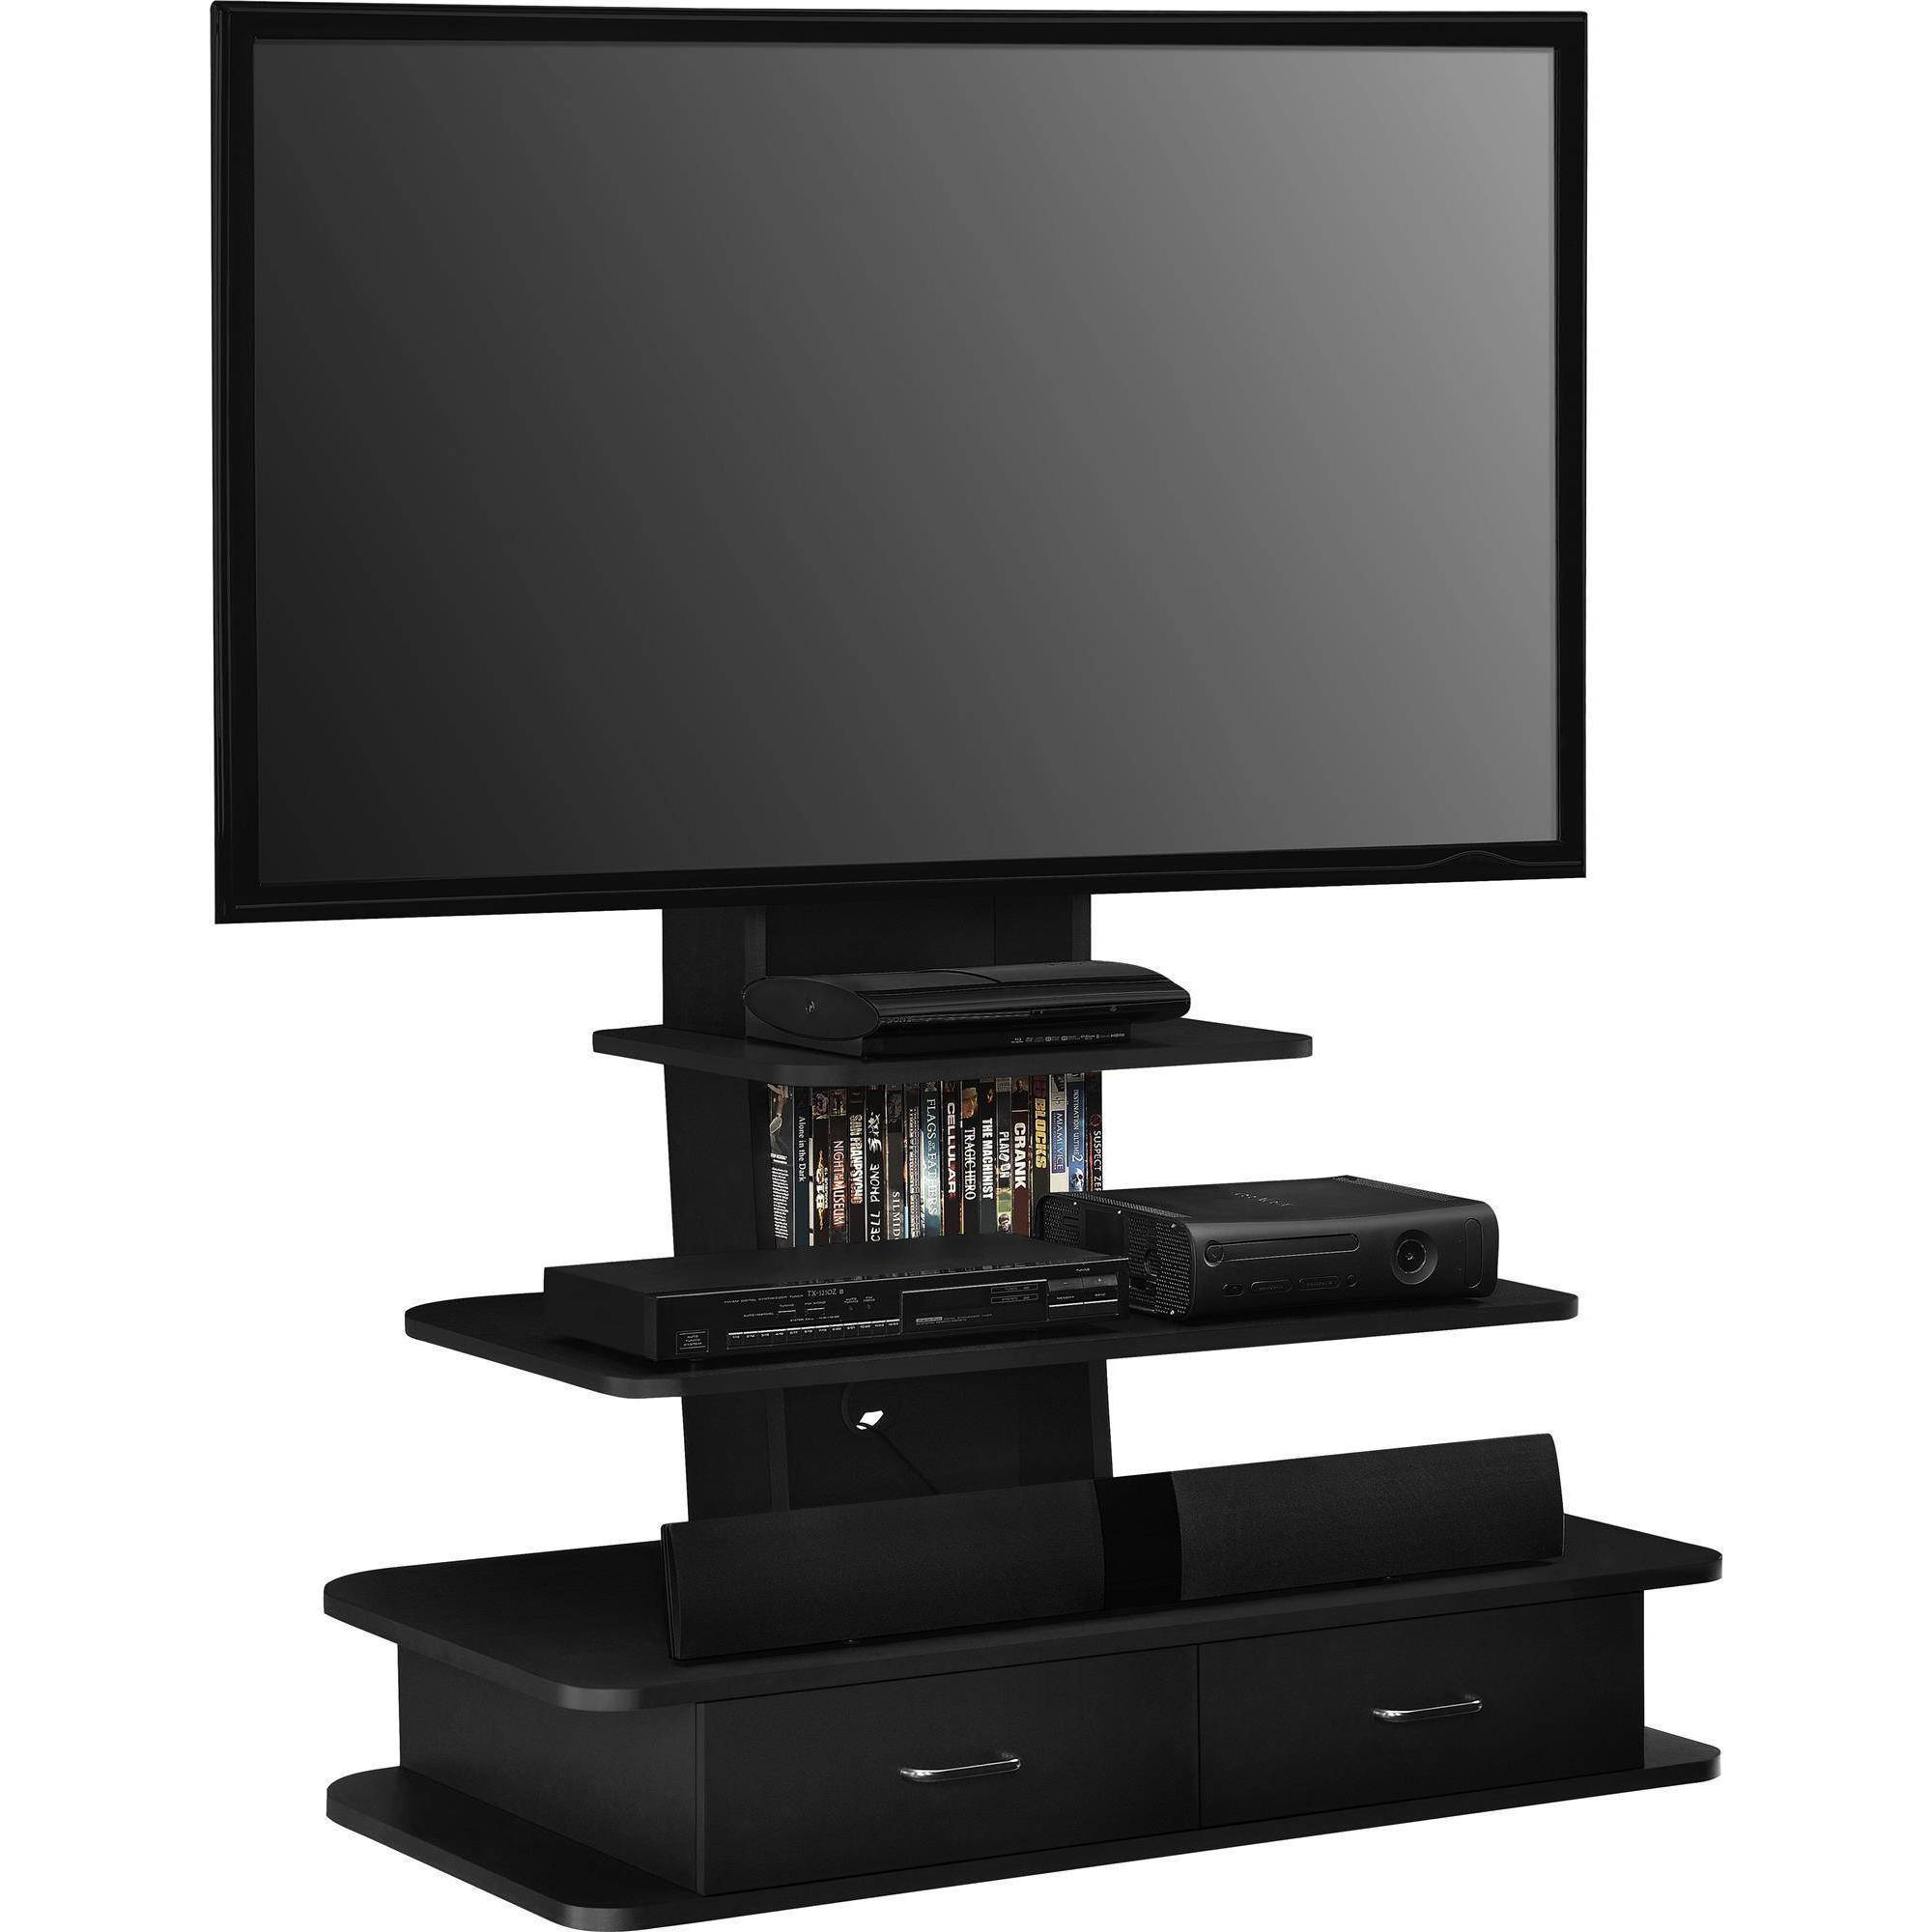 Tv Ideal: Large Entertainment Center Corner 65 Inch Tall 70 TV Stand